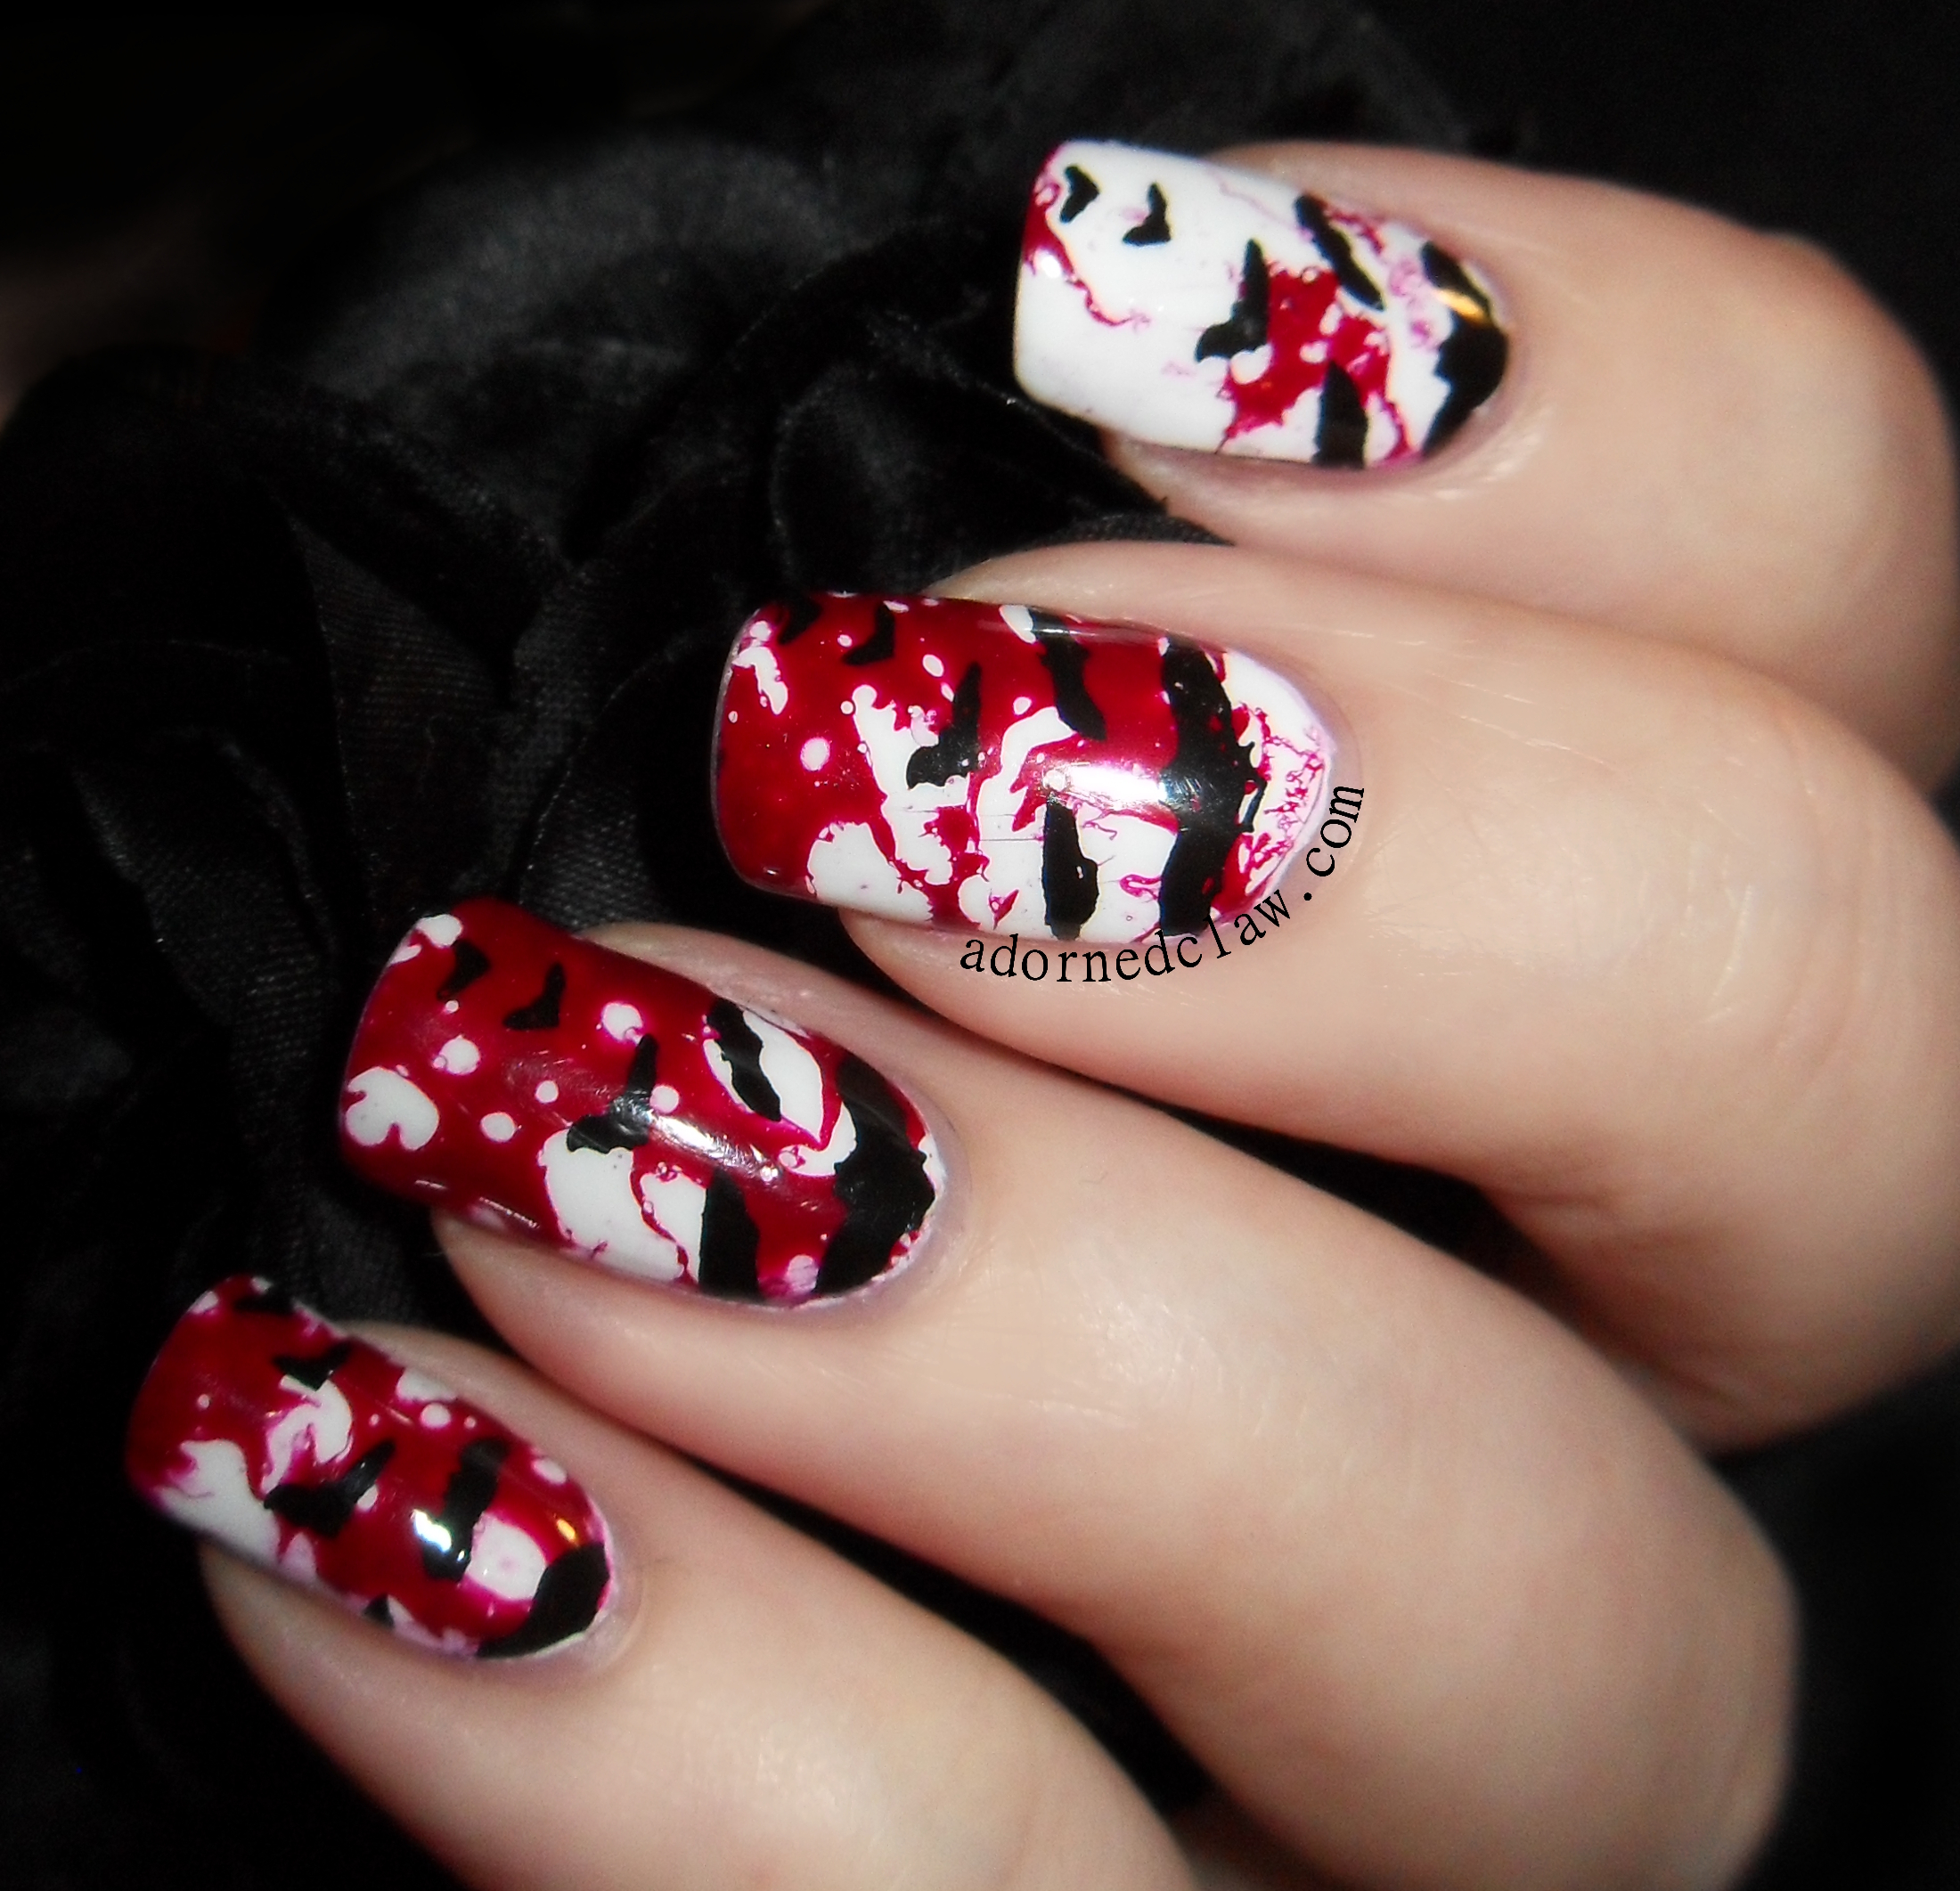 Red Black Nail Art Galleries And Nail Art.  Free Image Nail Art